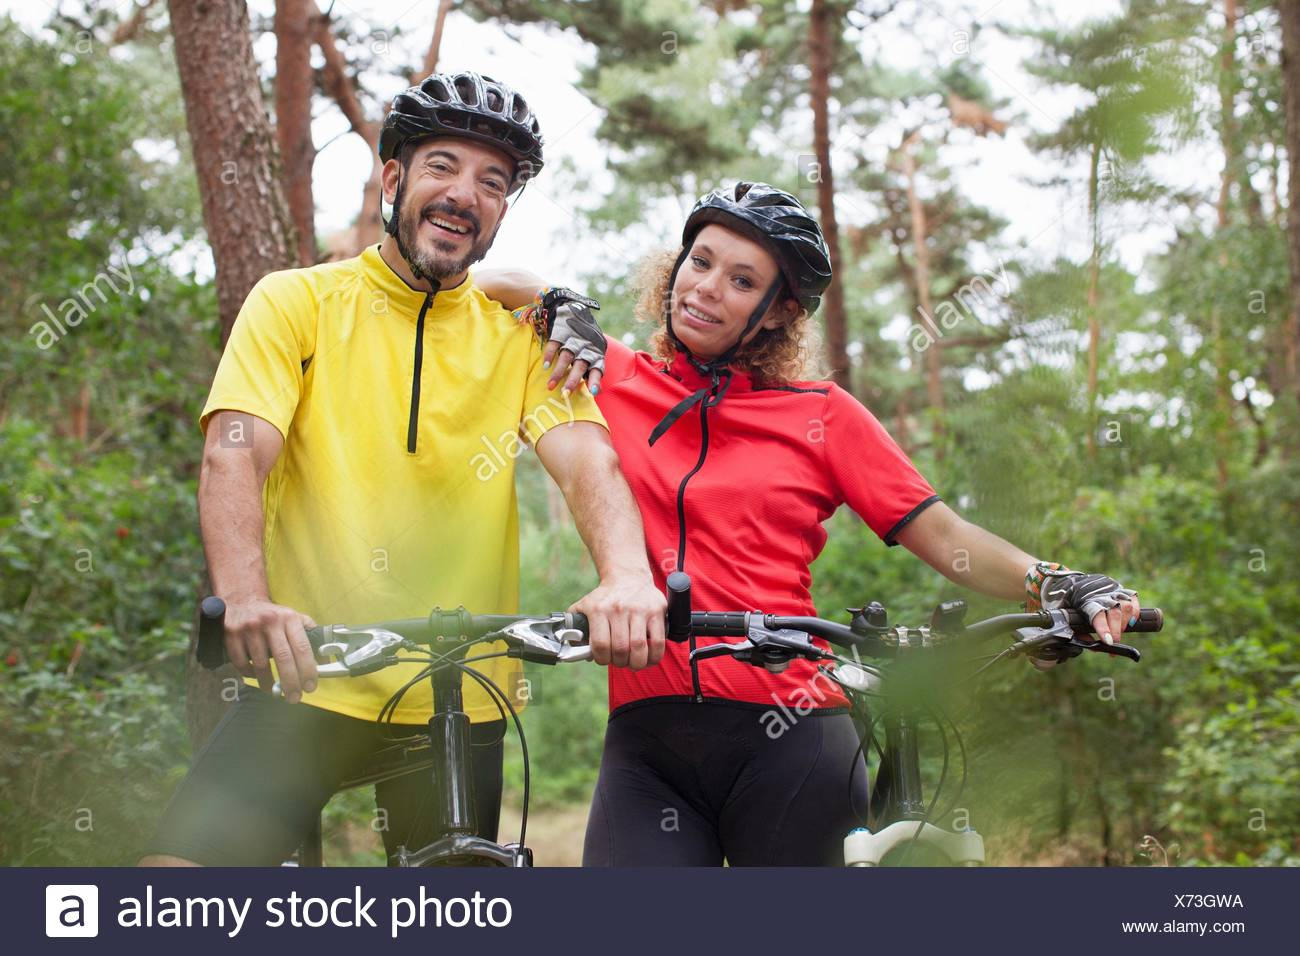 Portrait   happy mountain biking couple in forest - Stock Image